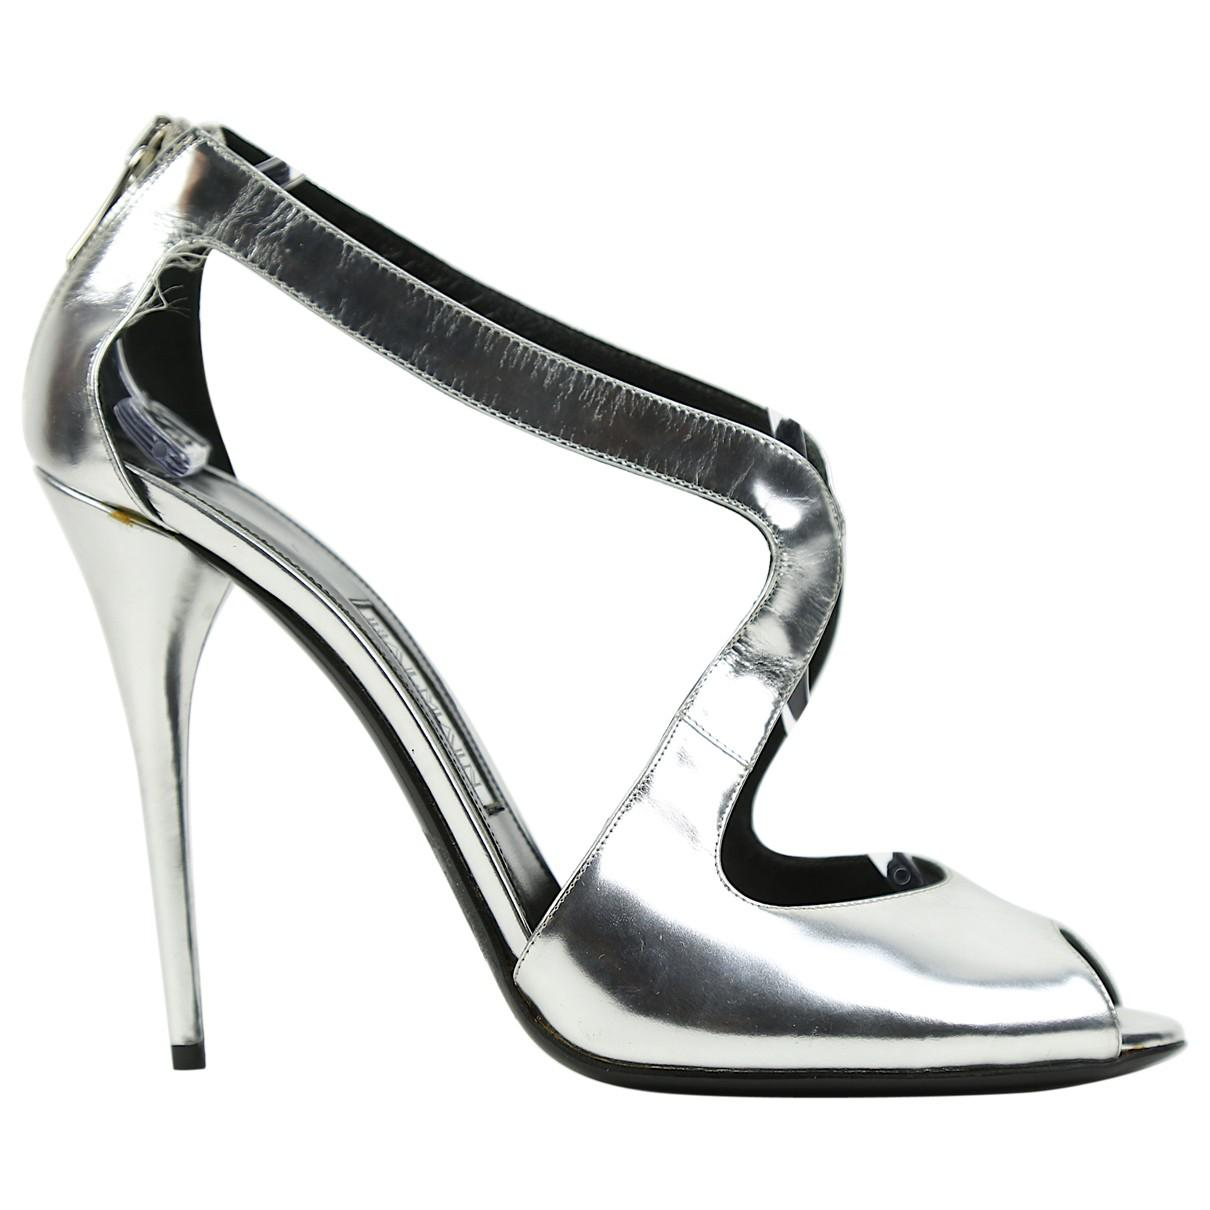 Pre-owned - Python heels Balmain Manchester Great Sale Buy Cheap Top Quality Cheap Price Buy Discount Discount Sale rOzQbwZf